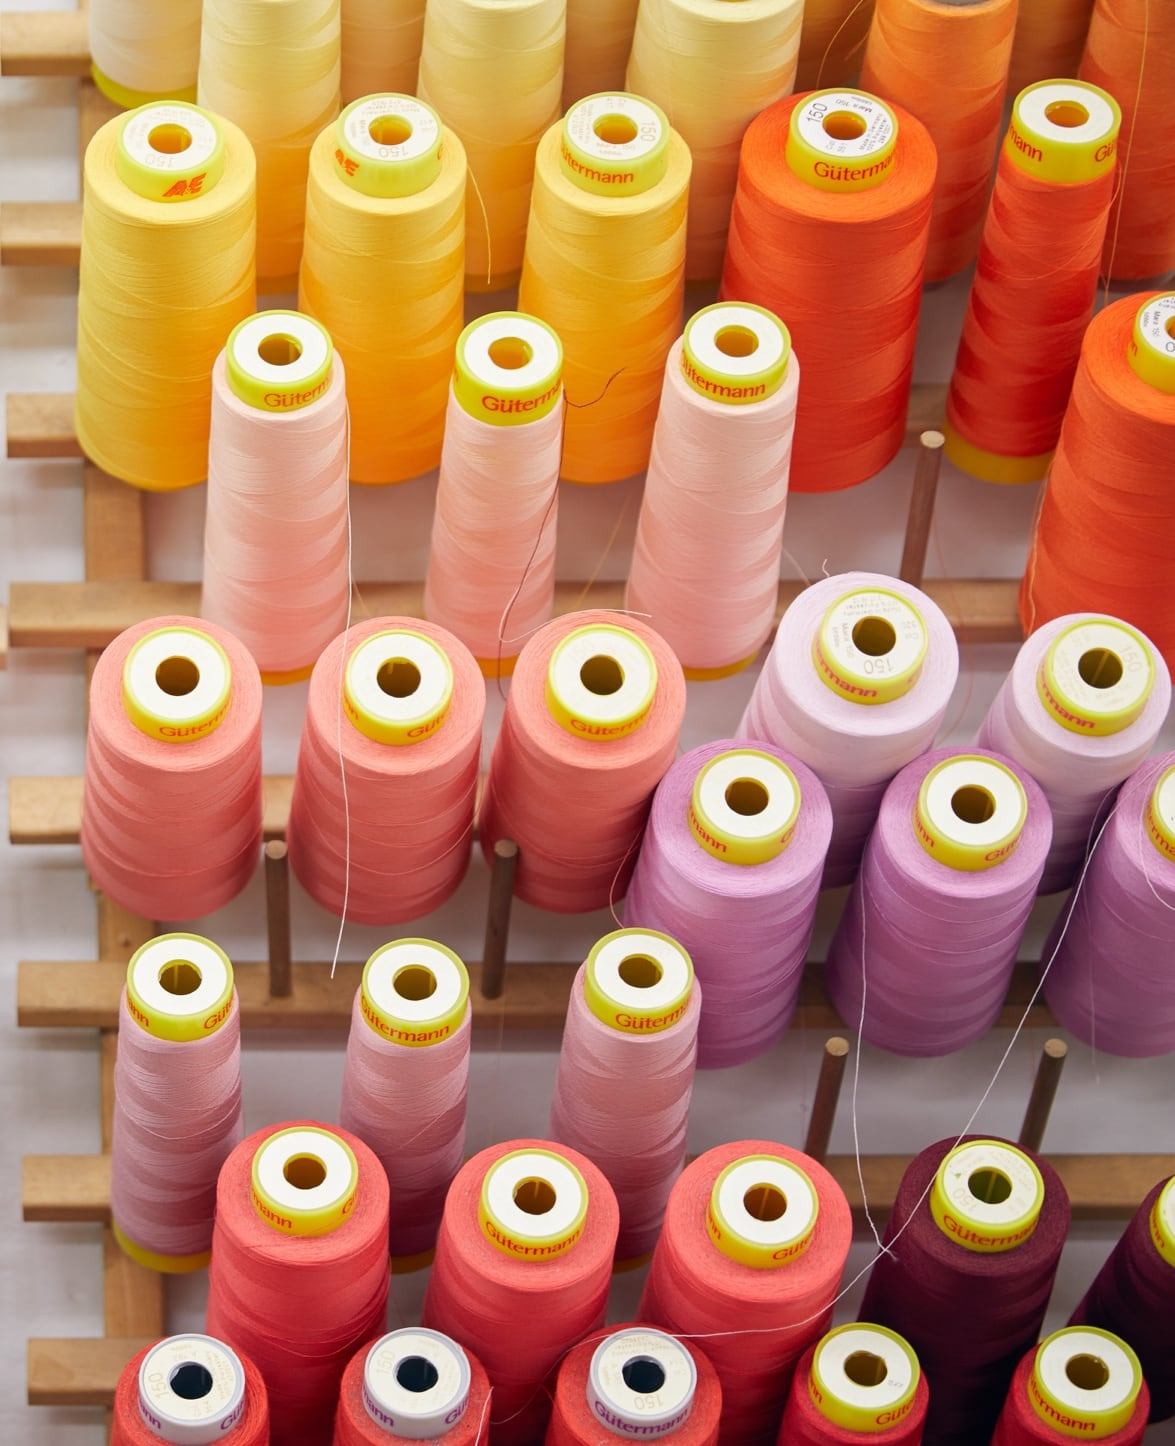 Pink, orange, and yellow spools of thread.